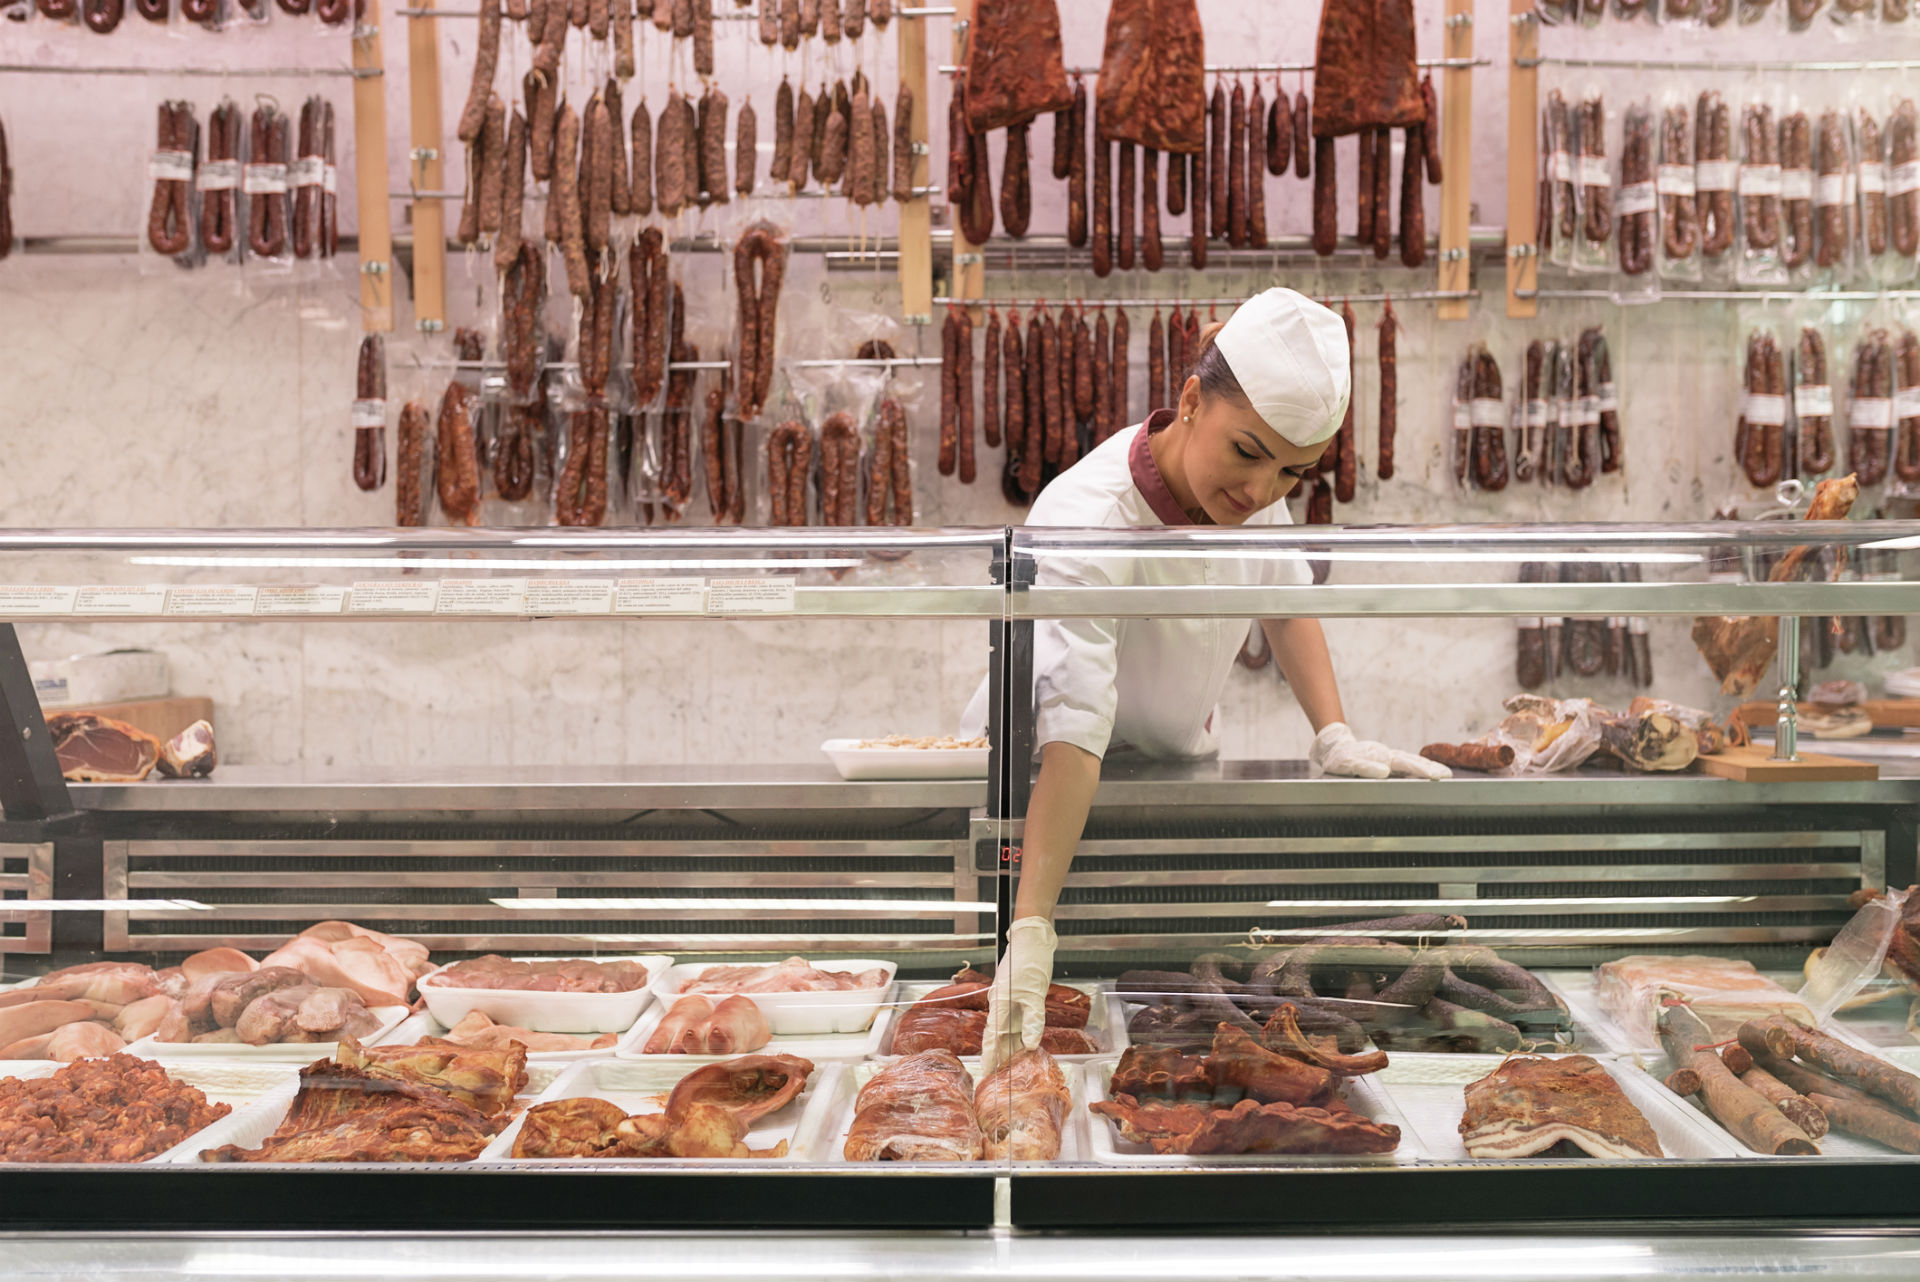 Small Business Success Stories: Why Shoppers Are Going Back to the Butchers Shop